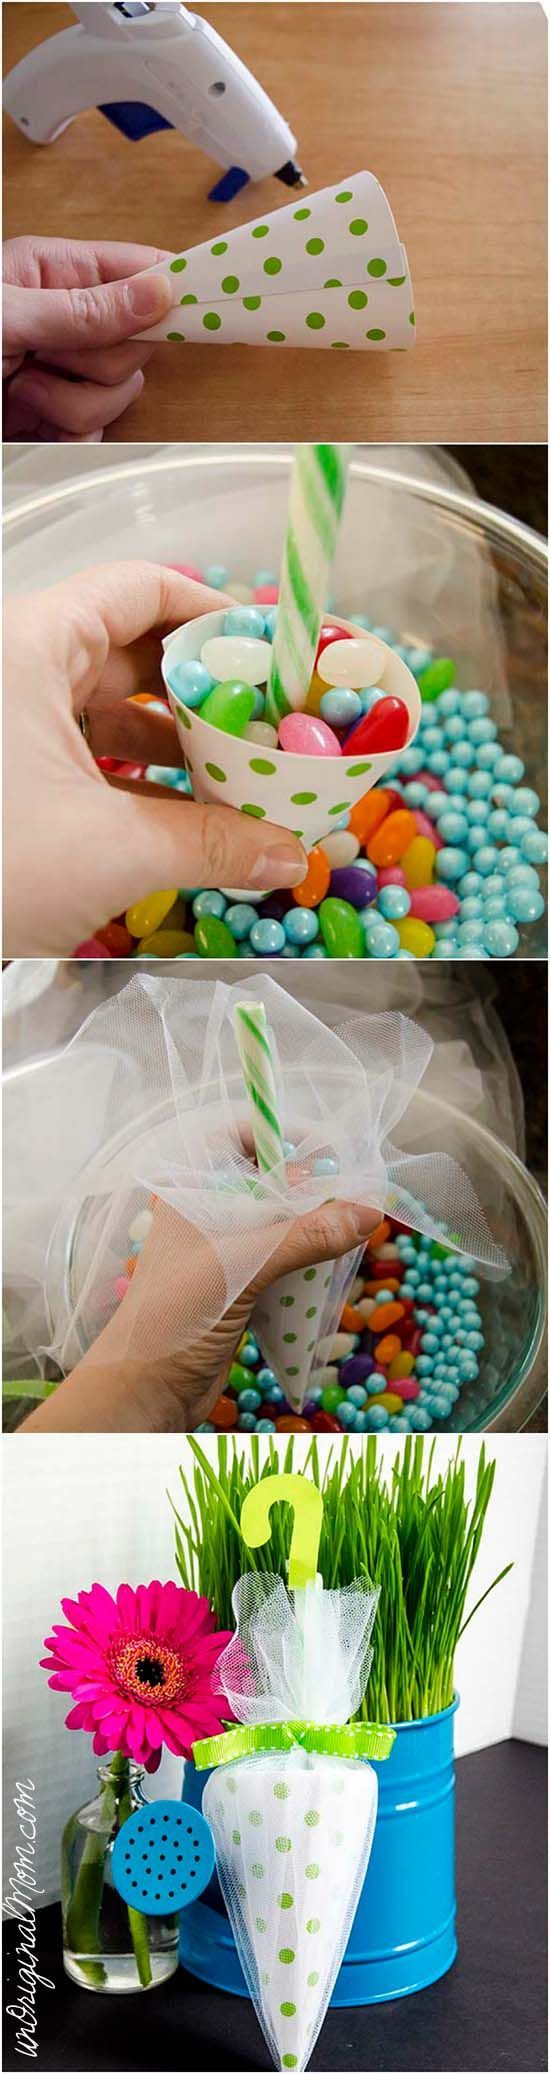 Candy Umbrella Shower Favors - perfect for a rain or umbrella themed baby shower or bridal shower!